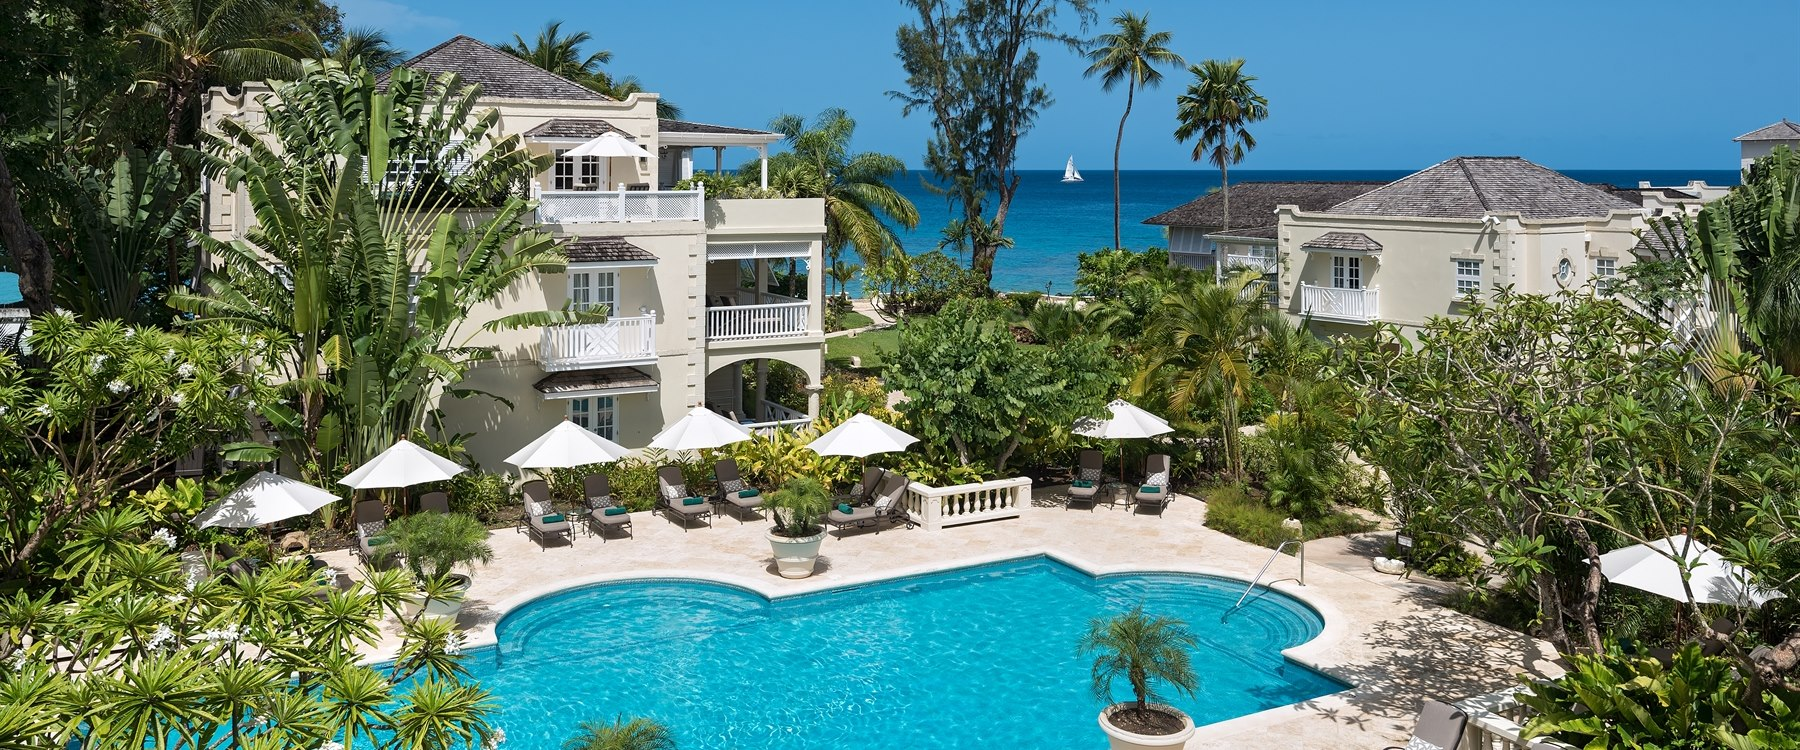 pool area at coral reef club barbados